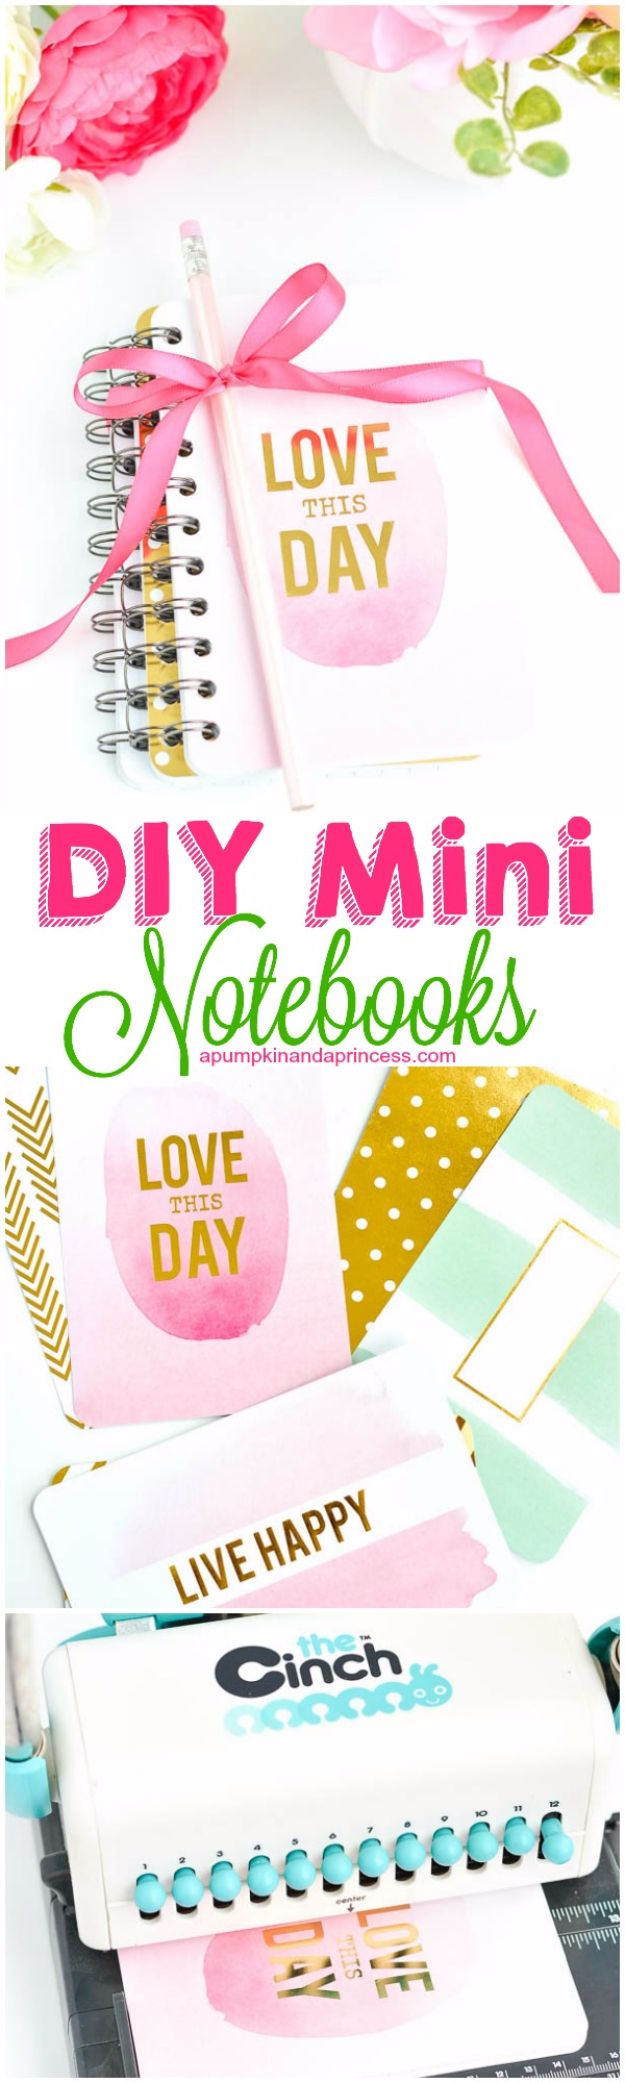 Cheap DIY Gifts and Inexpensive Homemade Christmas Gift Ideas for People on A Budget - DIY Mini Notebooks - To Make These Cool Presents Instead of Buying for the Holidays - Easy and Low Cost Gifts fTo Make For Friends and Neighbors - Quick Dollar Store Crafts and Projects for Xmas Gift Giving Parties - Step by Step Tutorials and Instructions #diygifts #teencrafts #diyideas #crafts #christmasgifts #cheapgifts